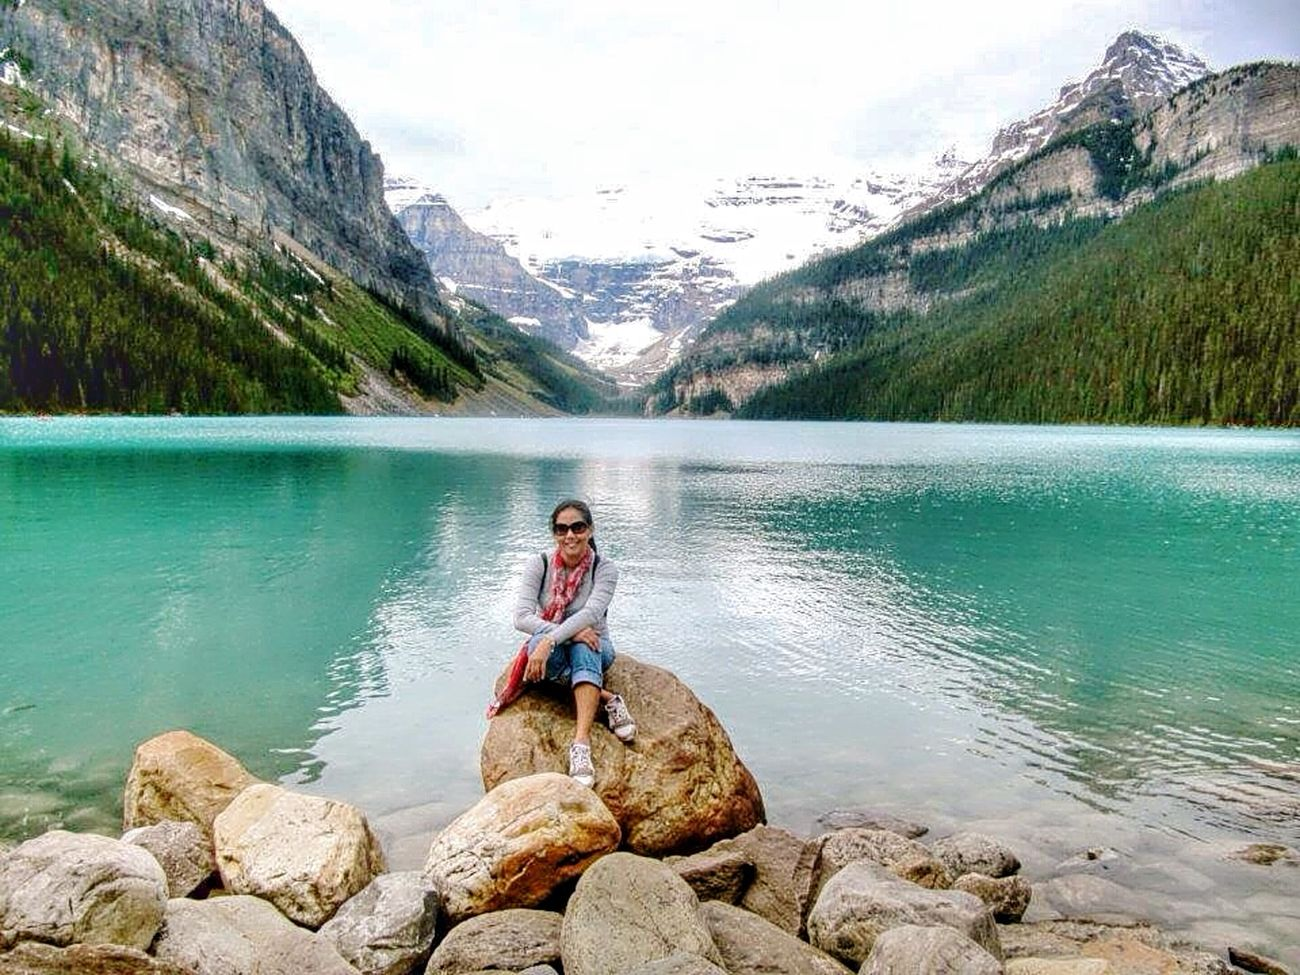 Turquoise By Motorola I love remembering! Hello World That's Me Travel Photography Landscape an old photo from Lake Louise Canada